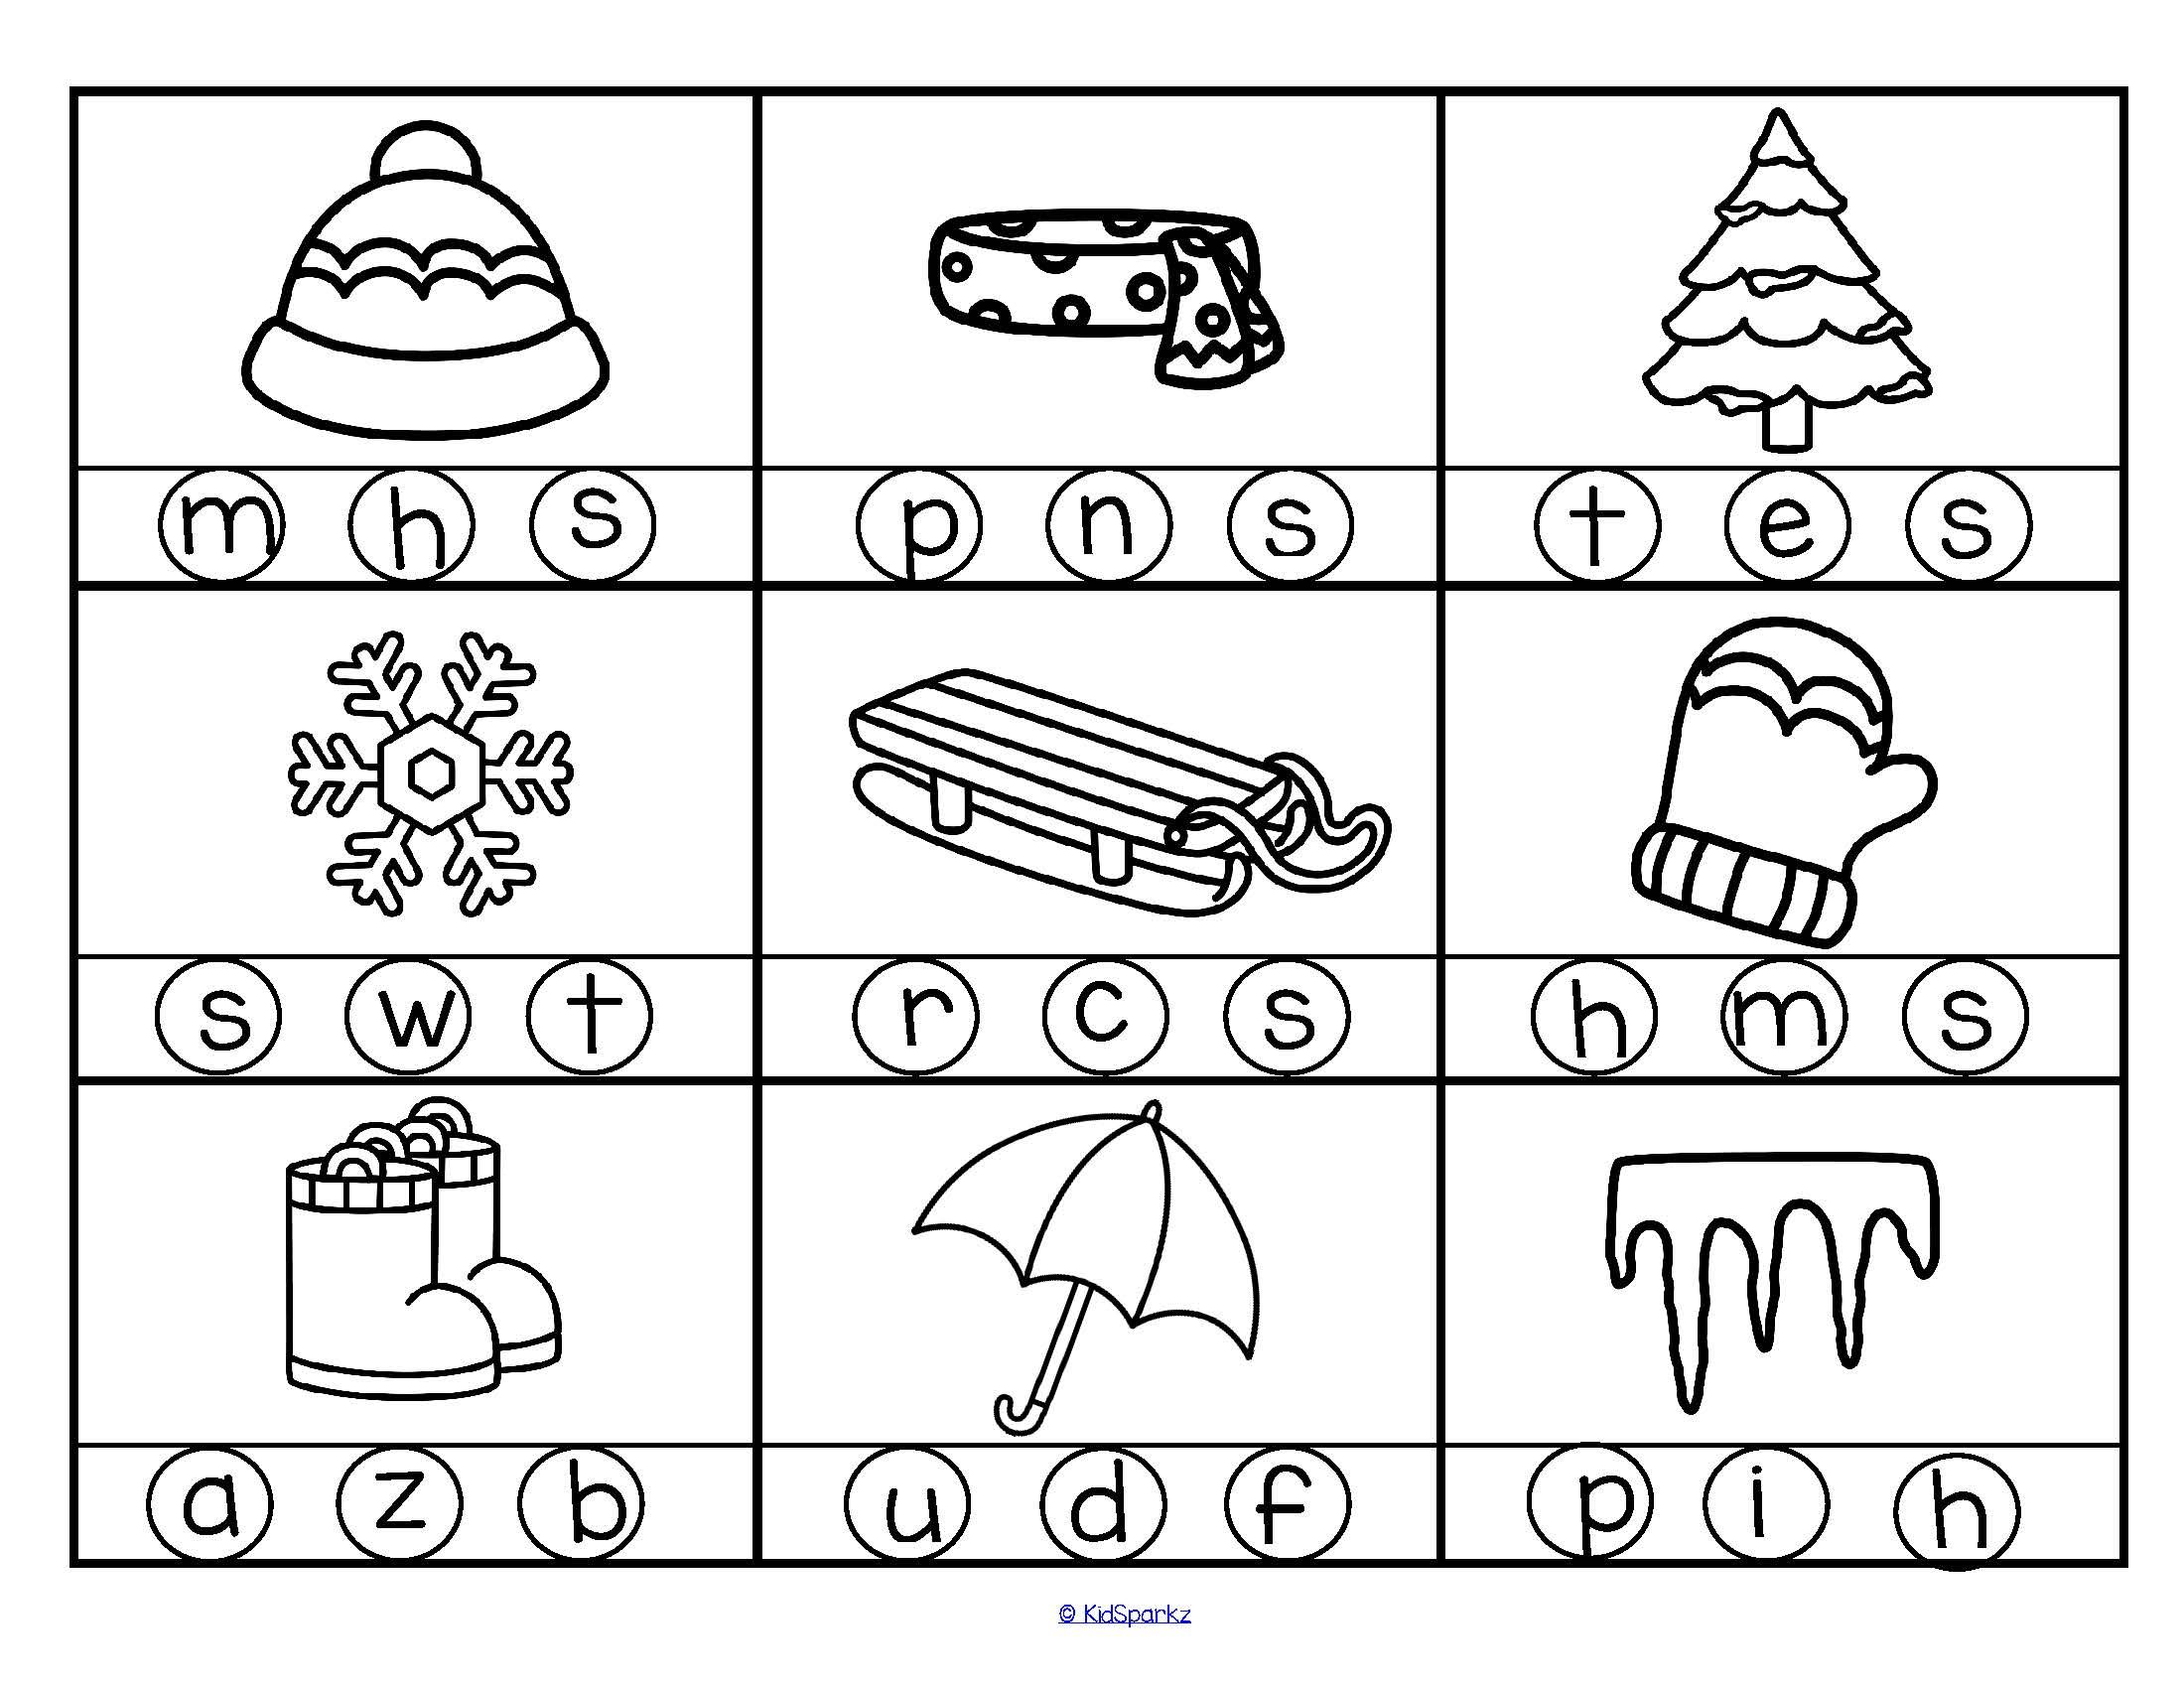 2 Free Printables With A Winter Theme 18 Pictures In B W Kindergarten Preschool Winterp Winter Kindergarten Preschool Winter Worksheets Winter Preschool